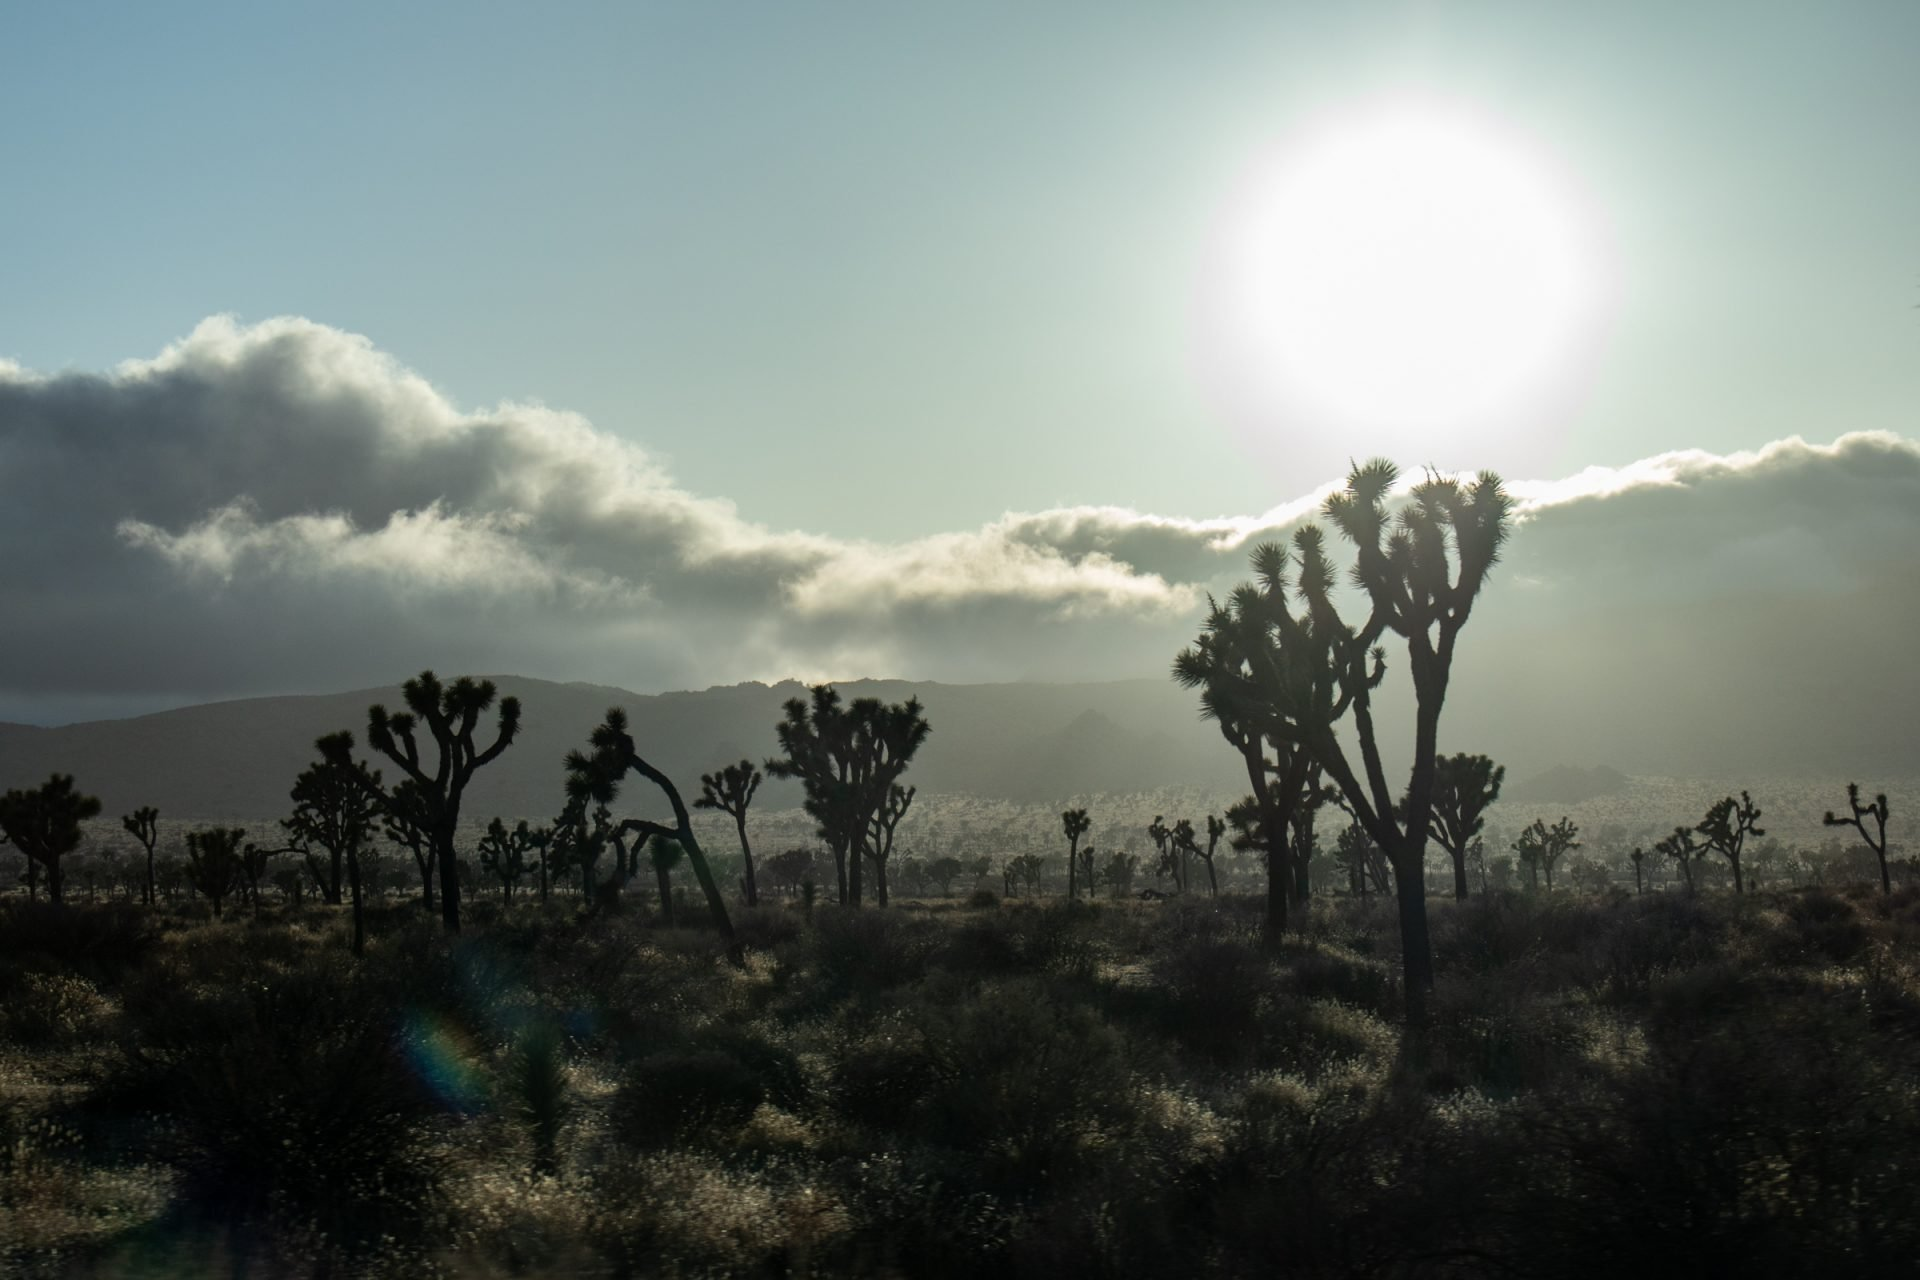 Sun And Clouds Beyond Open Area Of Joshua Trees